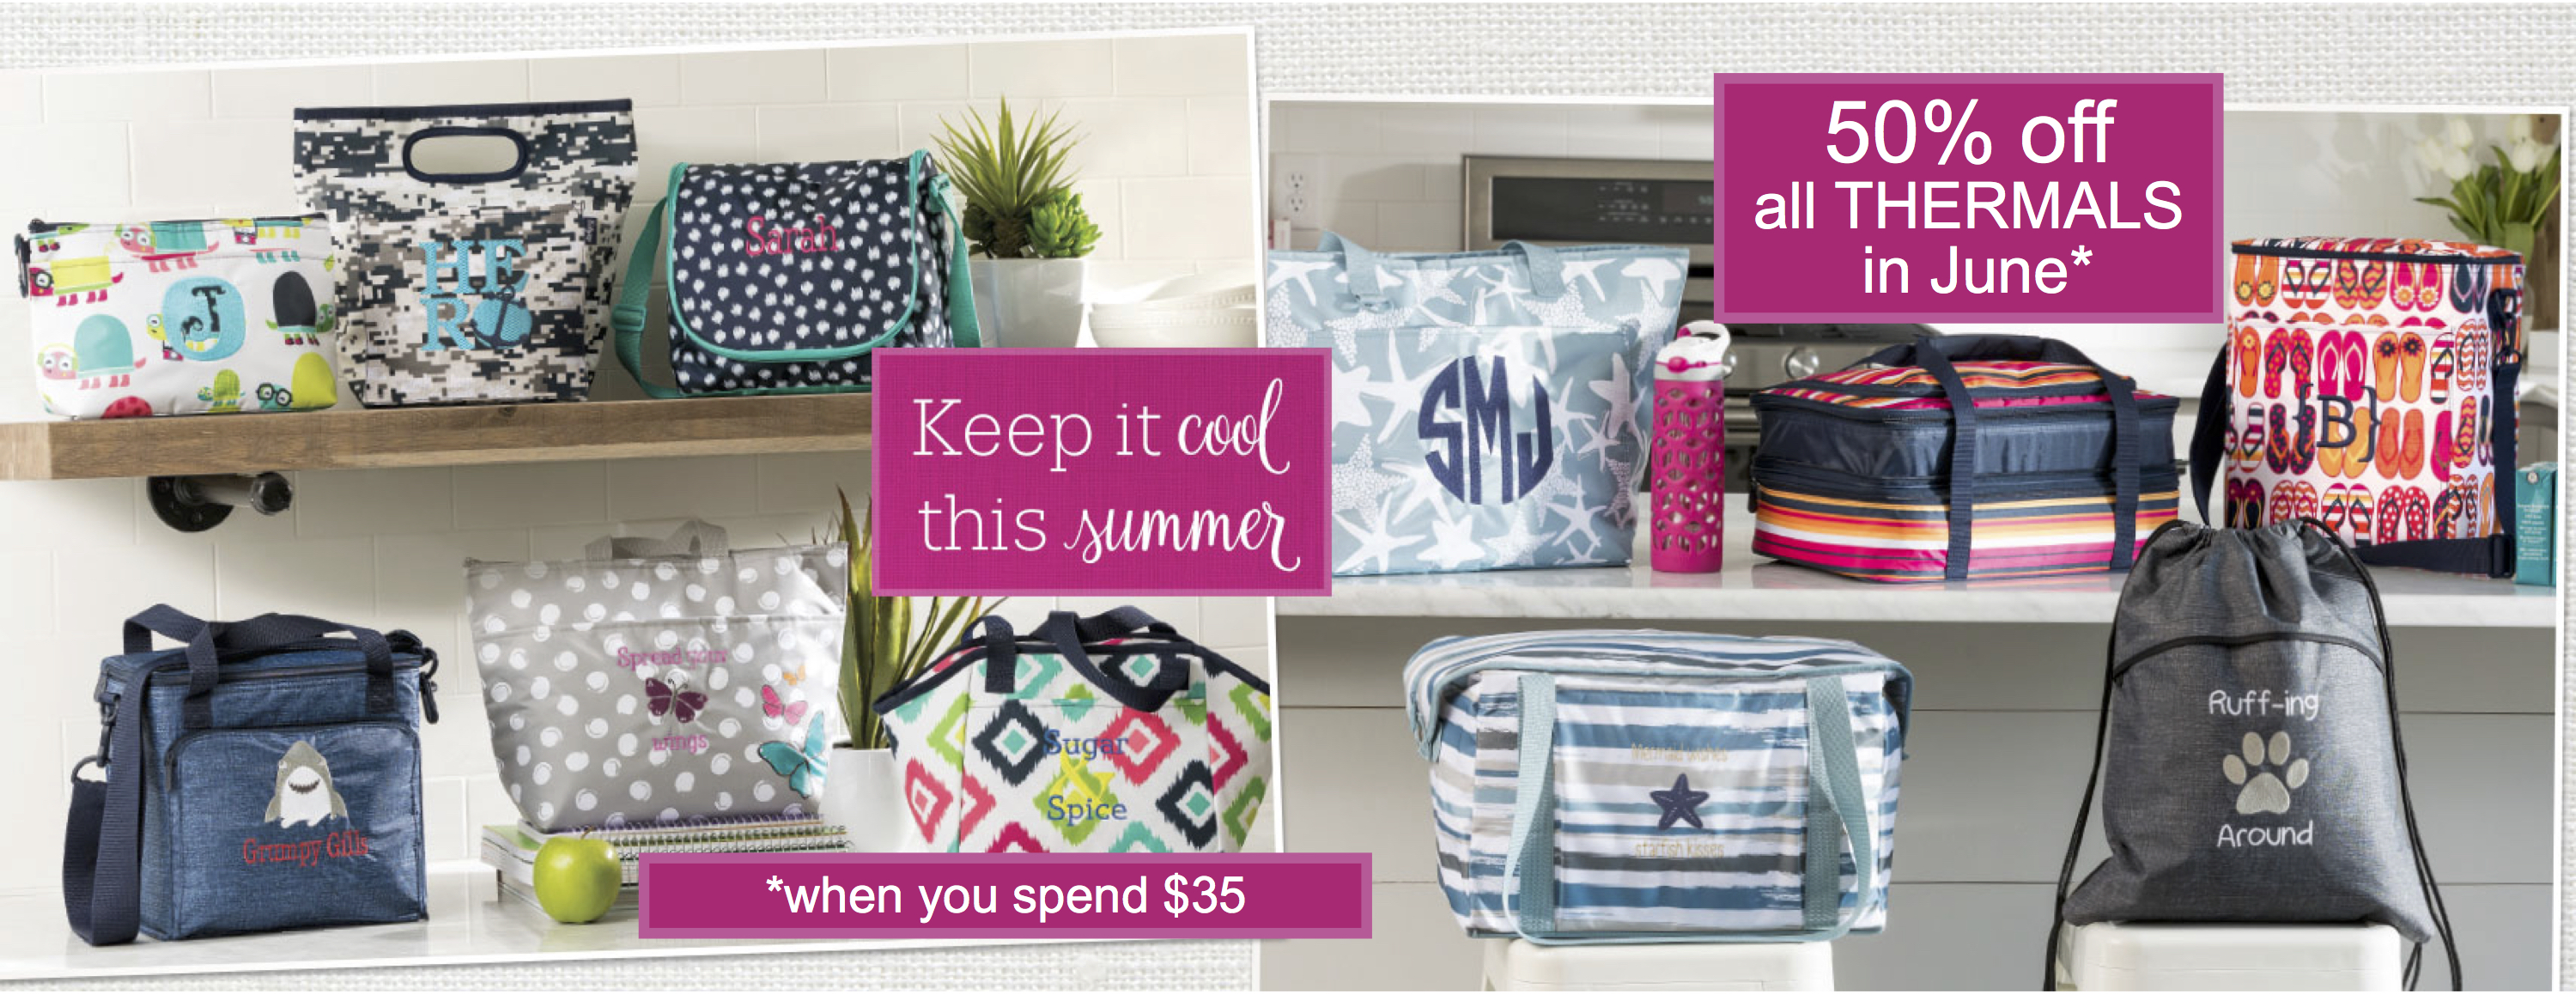 thirty-one-gifts-june-special